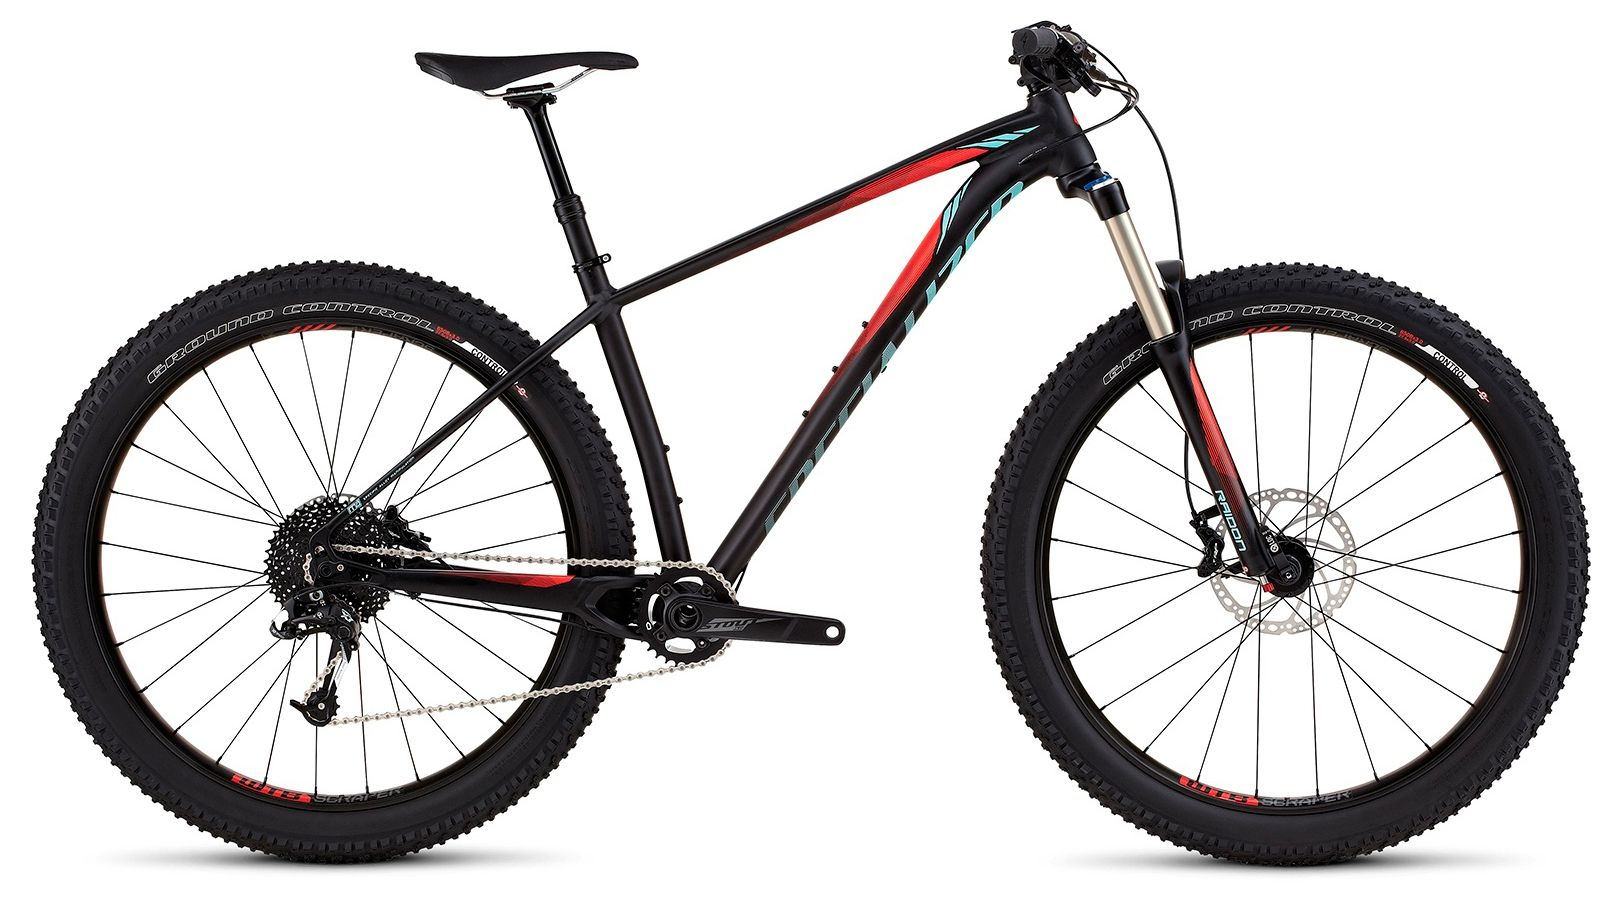 Велосипед Specialized Fuse Comp 6Fattie 2016 велосипед specialized fuse comp 6fattie 2016